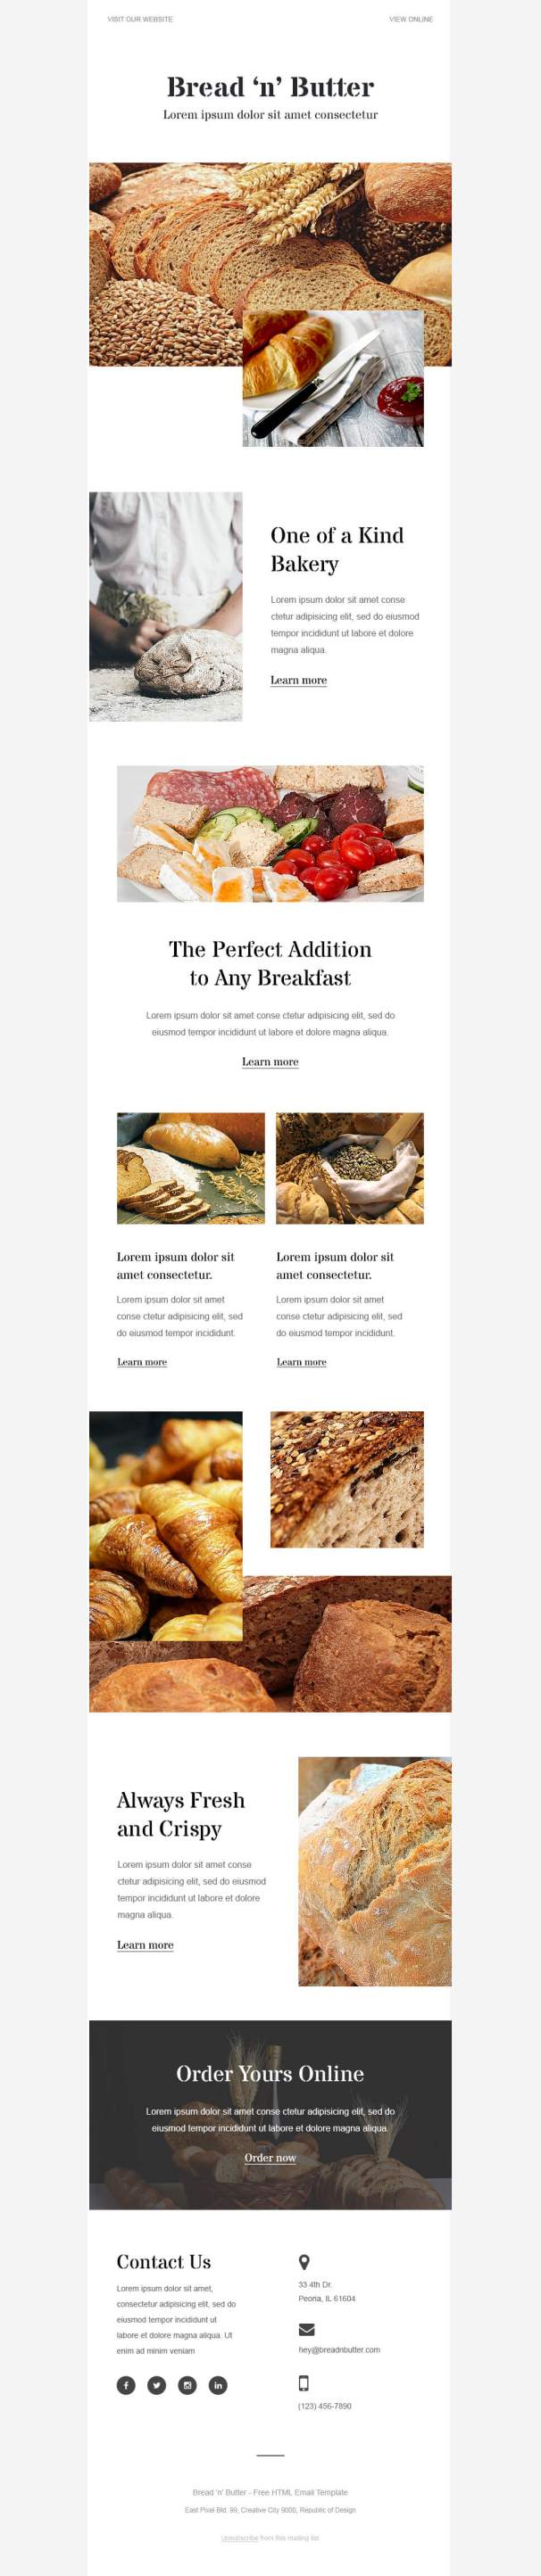 MB_Freemium-Templates_Food-and-Restaurants_6